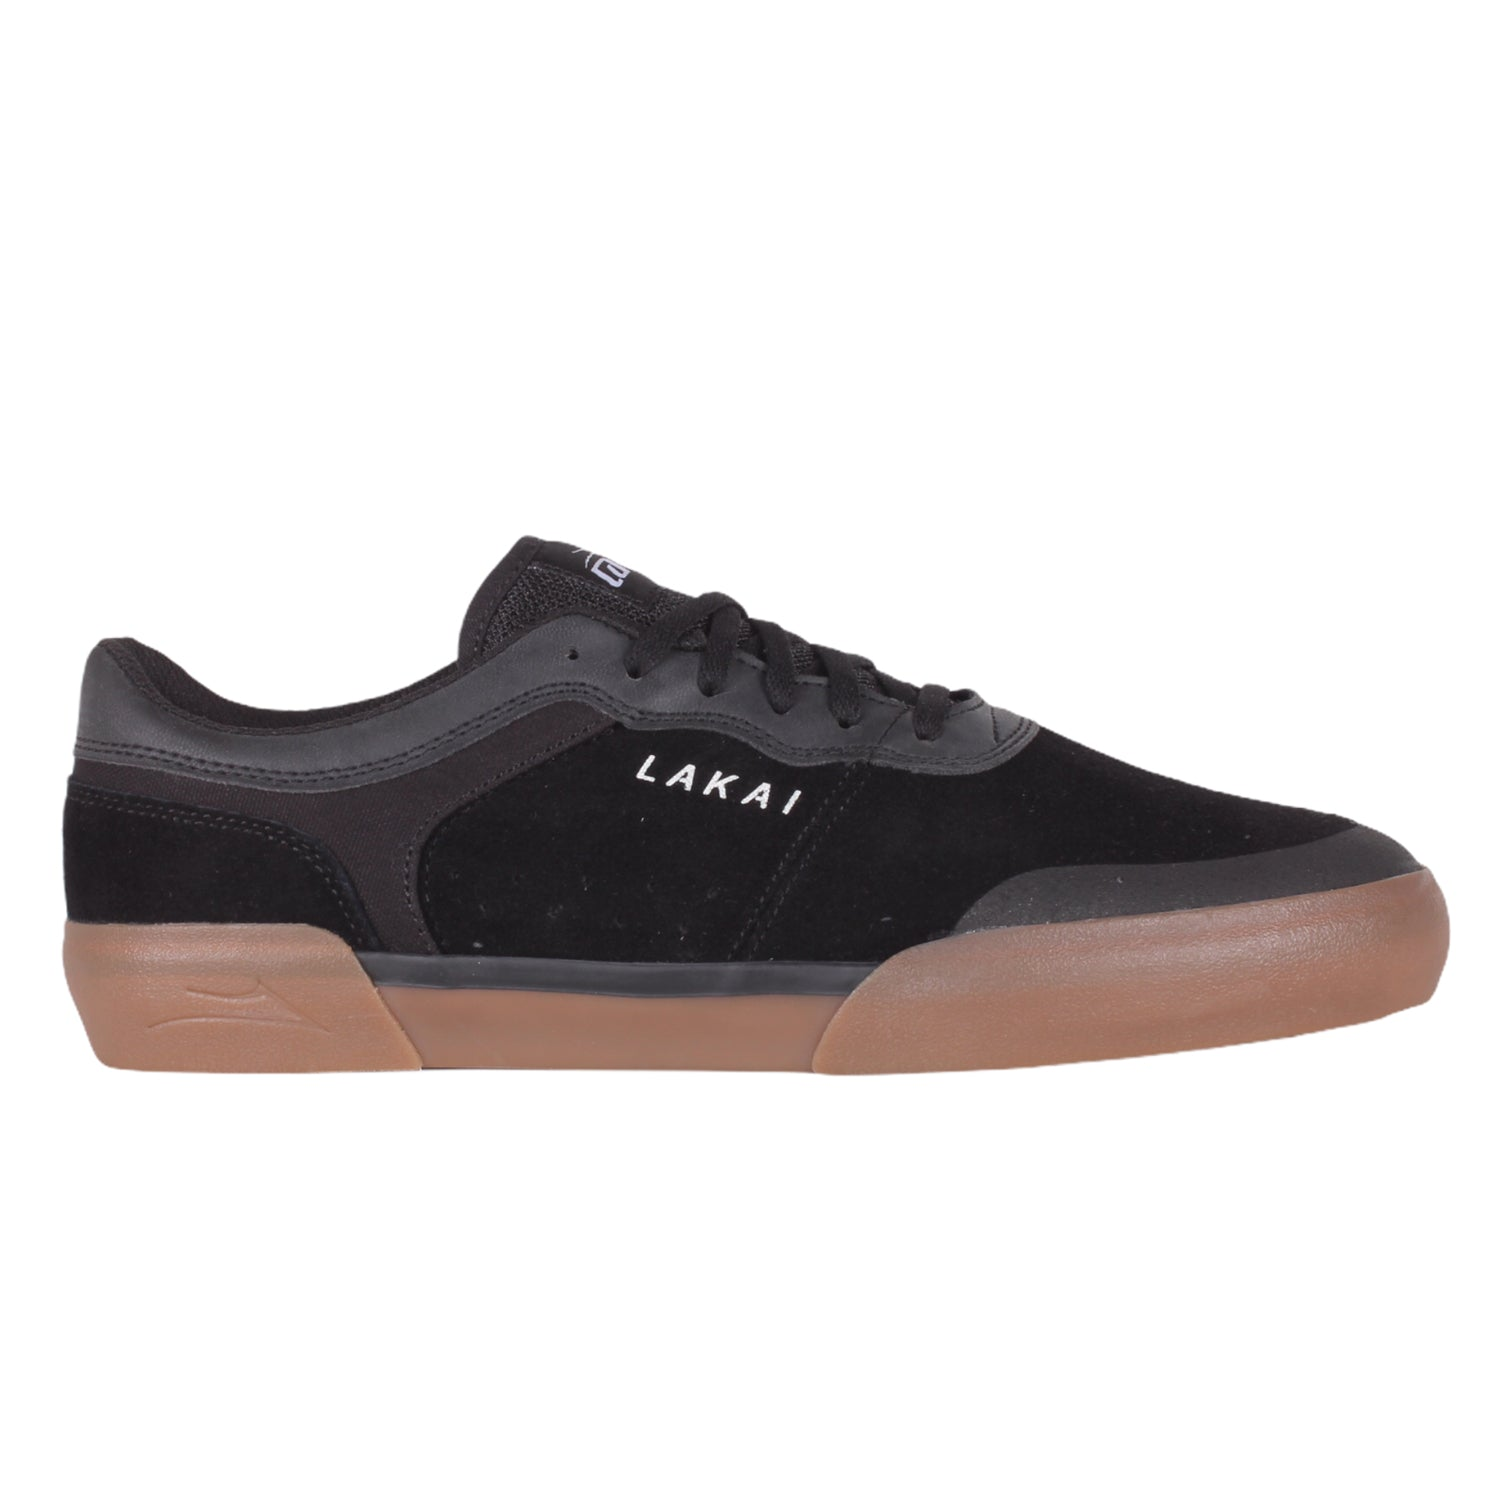 Overripe Lakai Staple Anchor Black/Gum (2016)